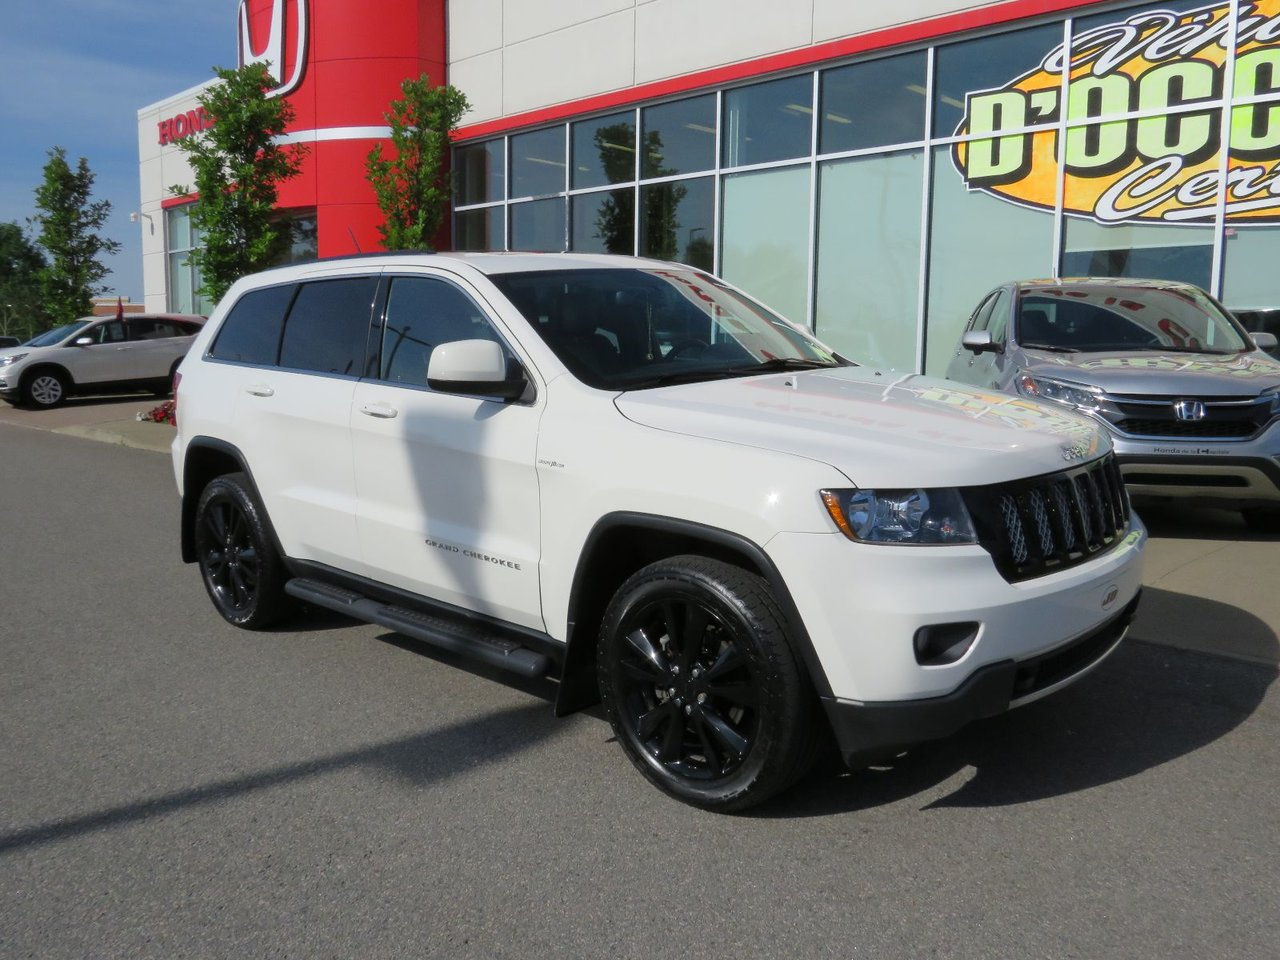 quebec nicolas grand in inventory cherokee sale used st for en jeep